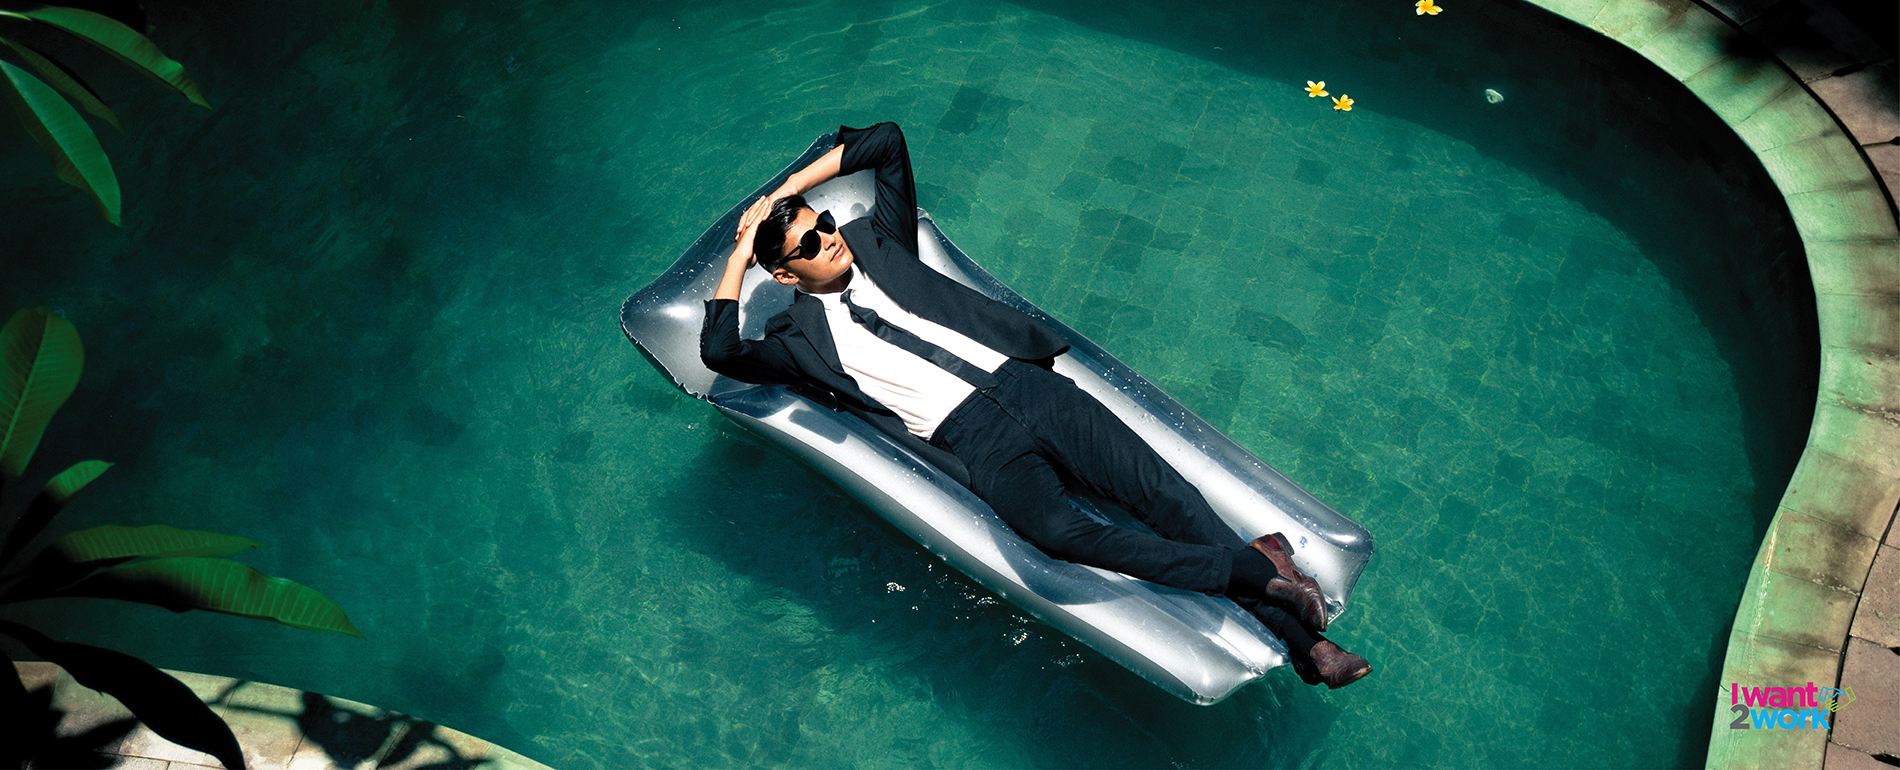 4 ways to end the business working year on a high guy man male on pool inflatable lilo in business suit working relaxed